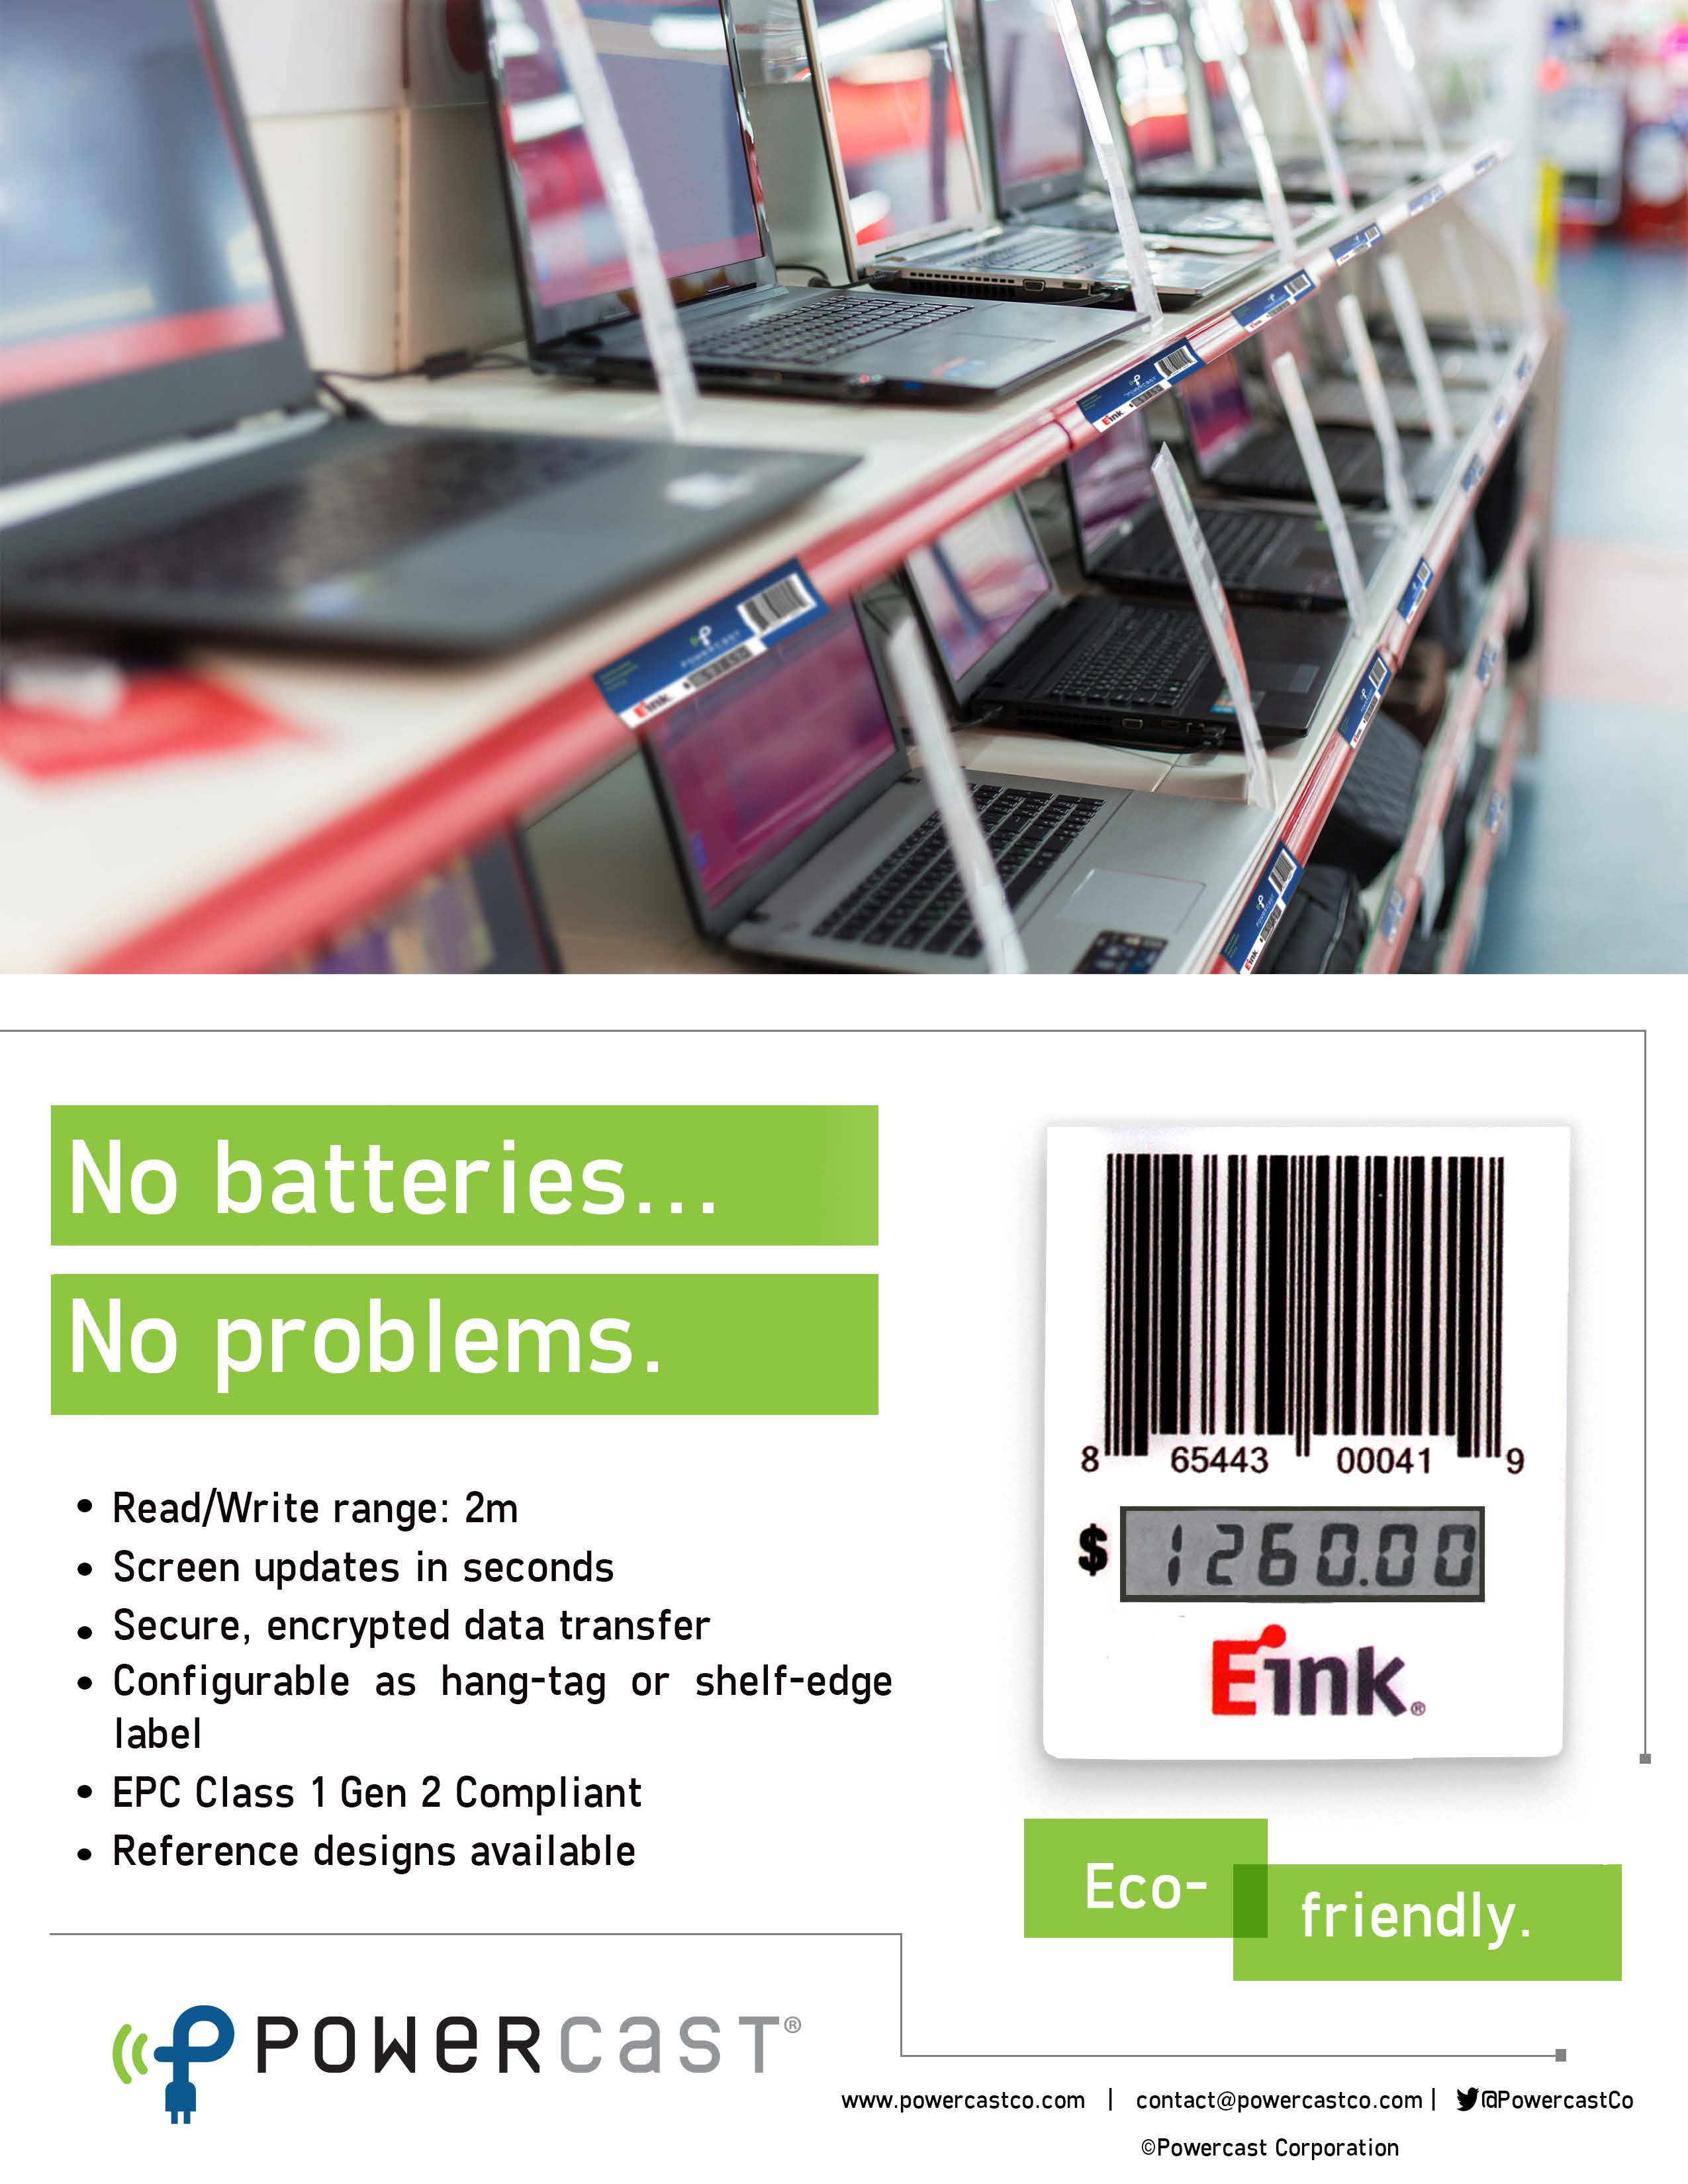 RFID Retail Price Tag Flyer_Page_2_Image_0001